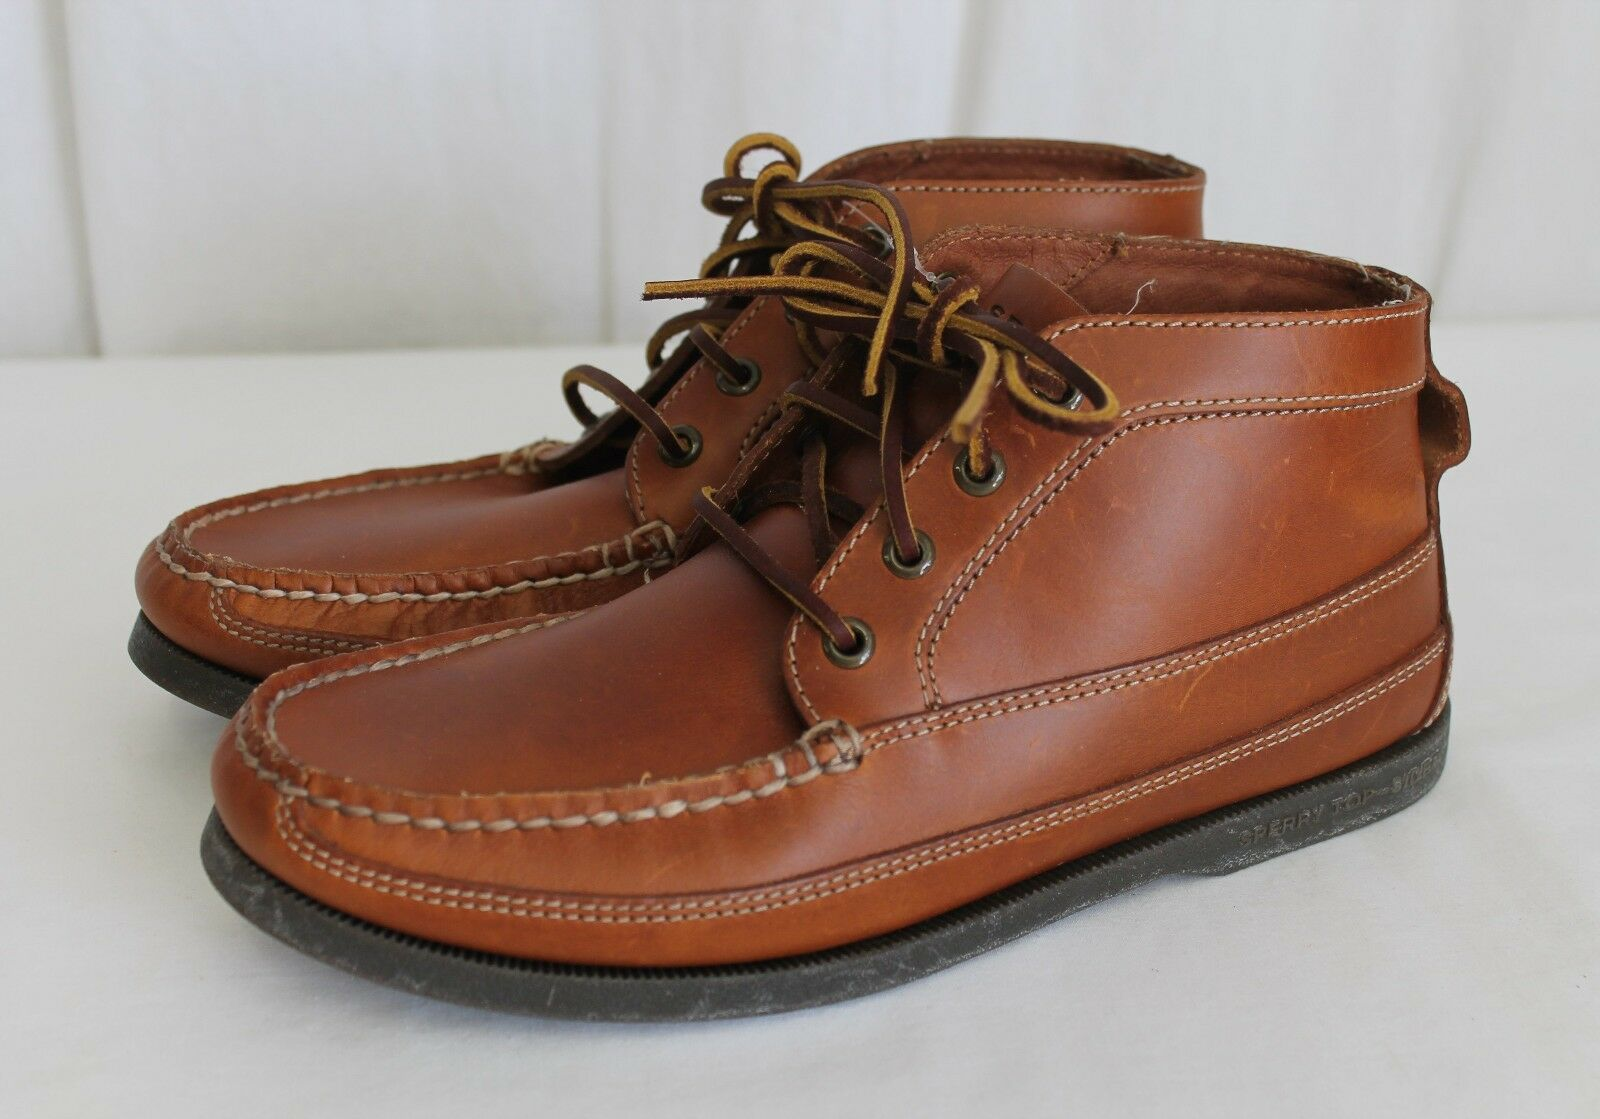 Sperry® for J.Crew Leather Chukka Boots shoes Brown Size 8 M